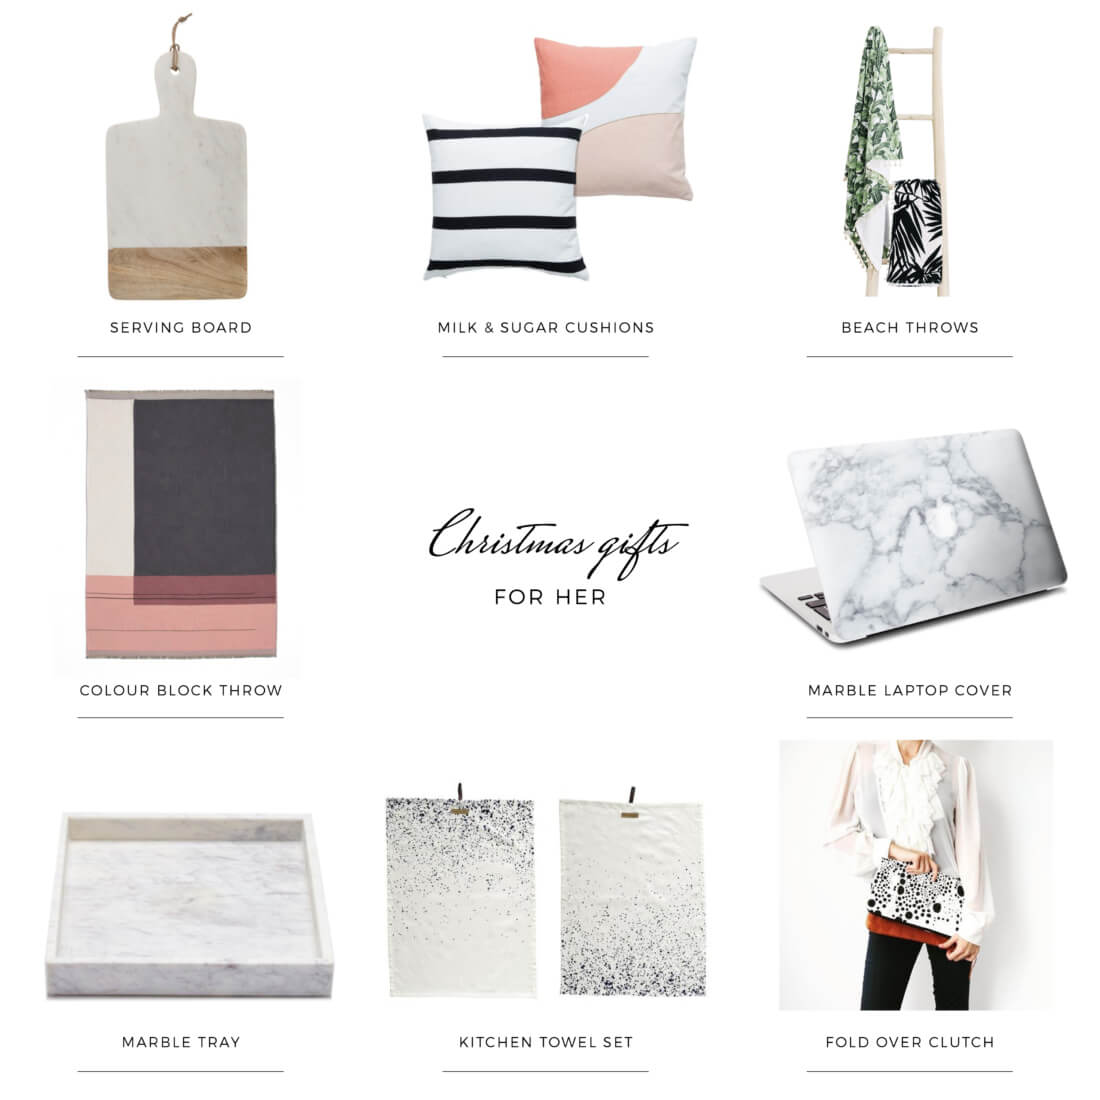 Christmas Gifts For Her.Christmas Gifts For Her House Of Hawkes